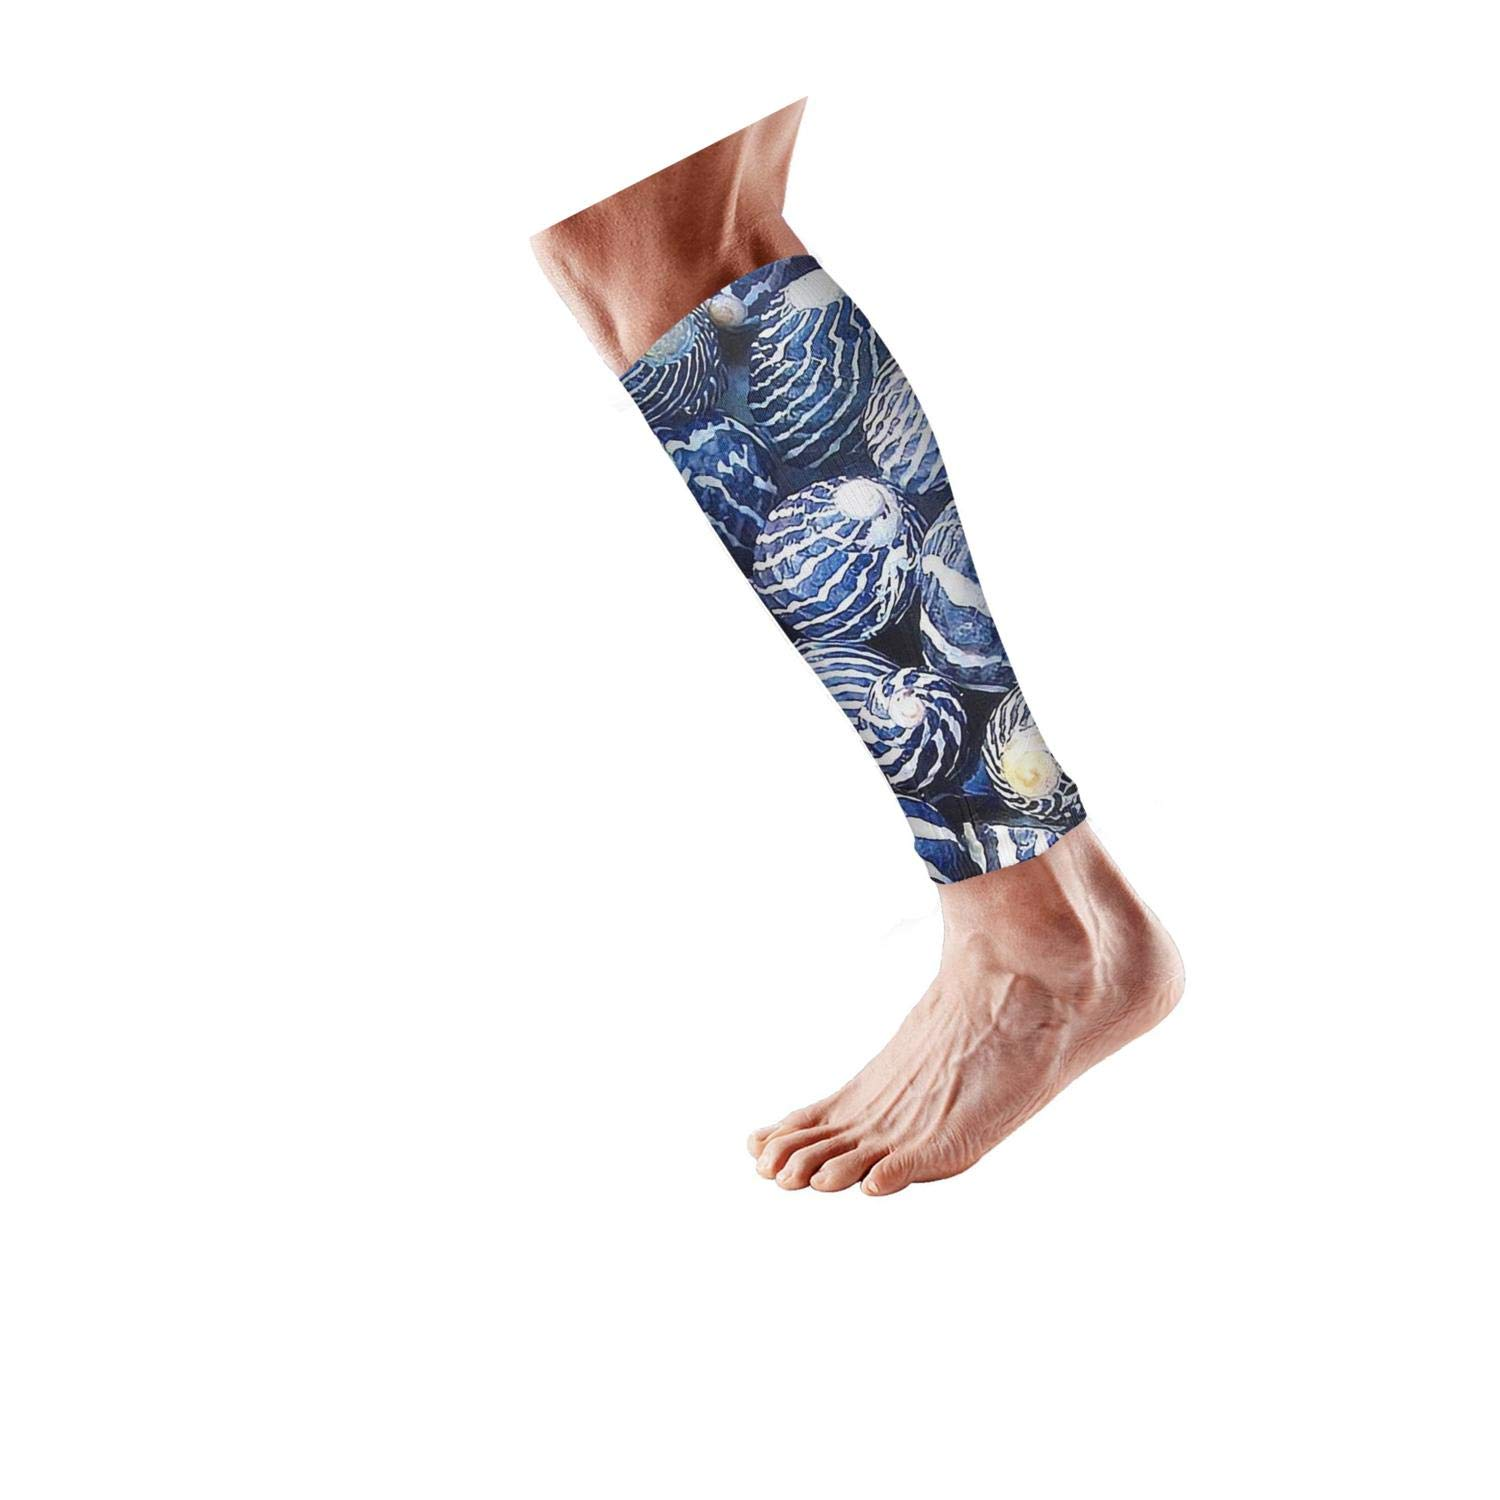 Smilelolly Blue Conch Shell Calf Compression Sleeves Helps Shin Splint Leg Sleeves for Men Women